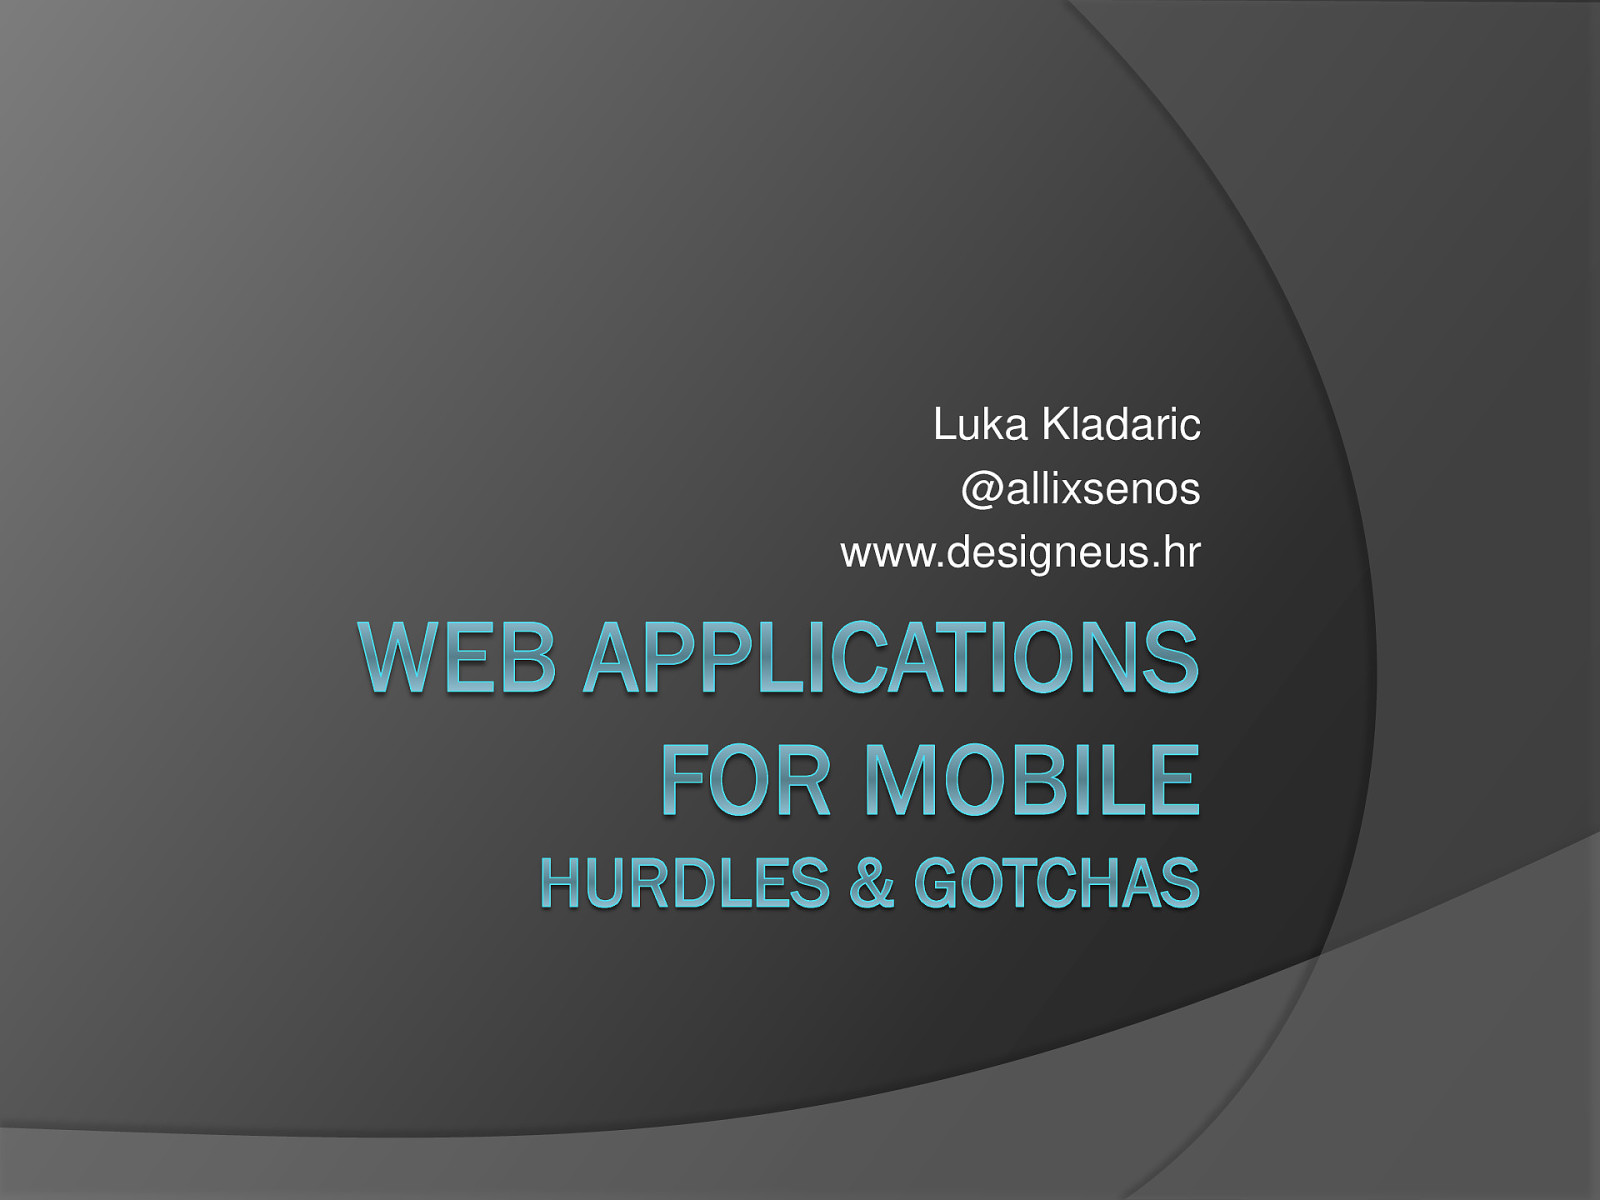 Web apps for mobile - hurdles and gotchas